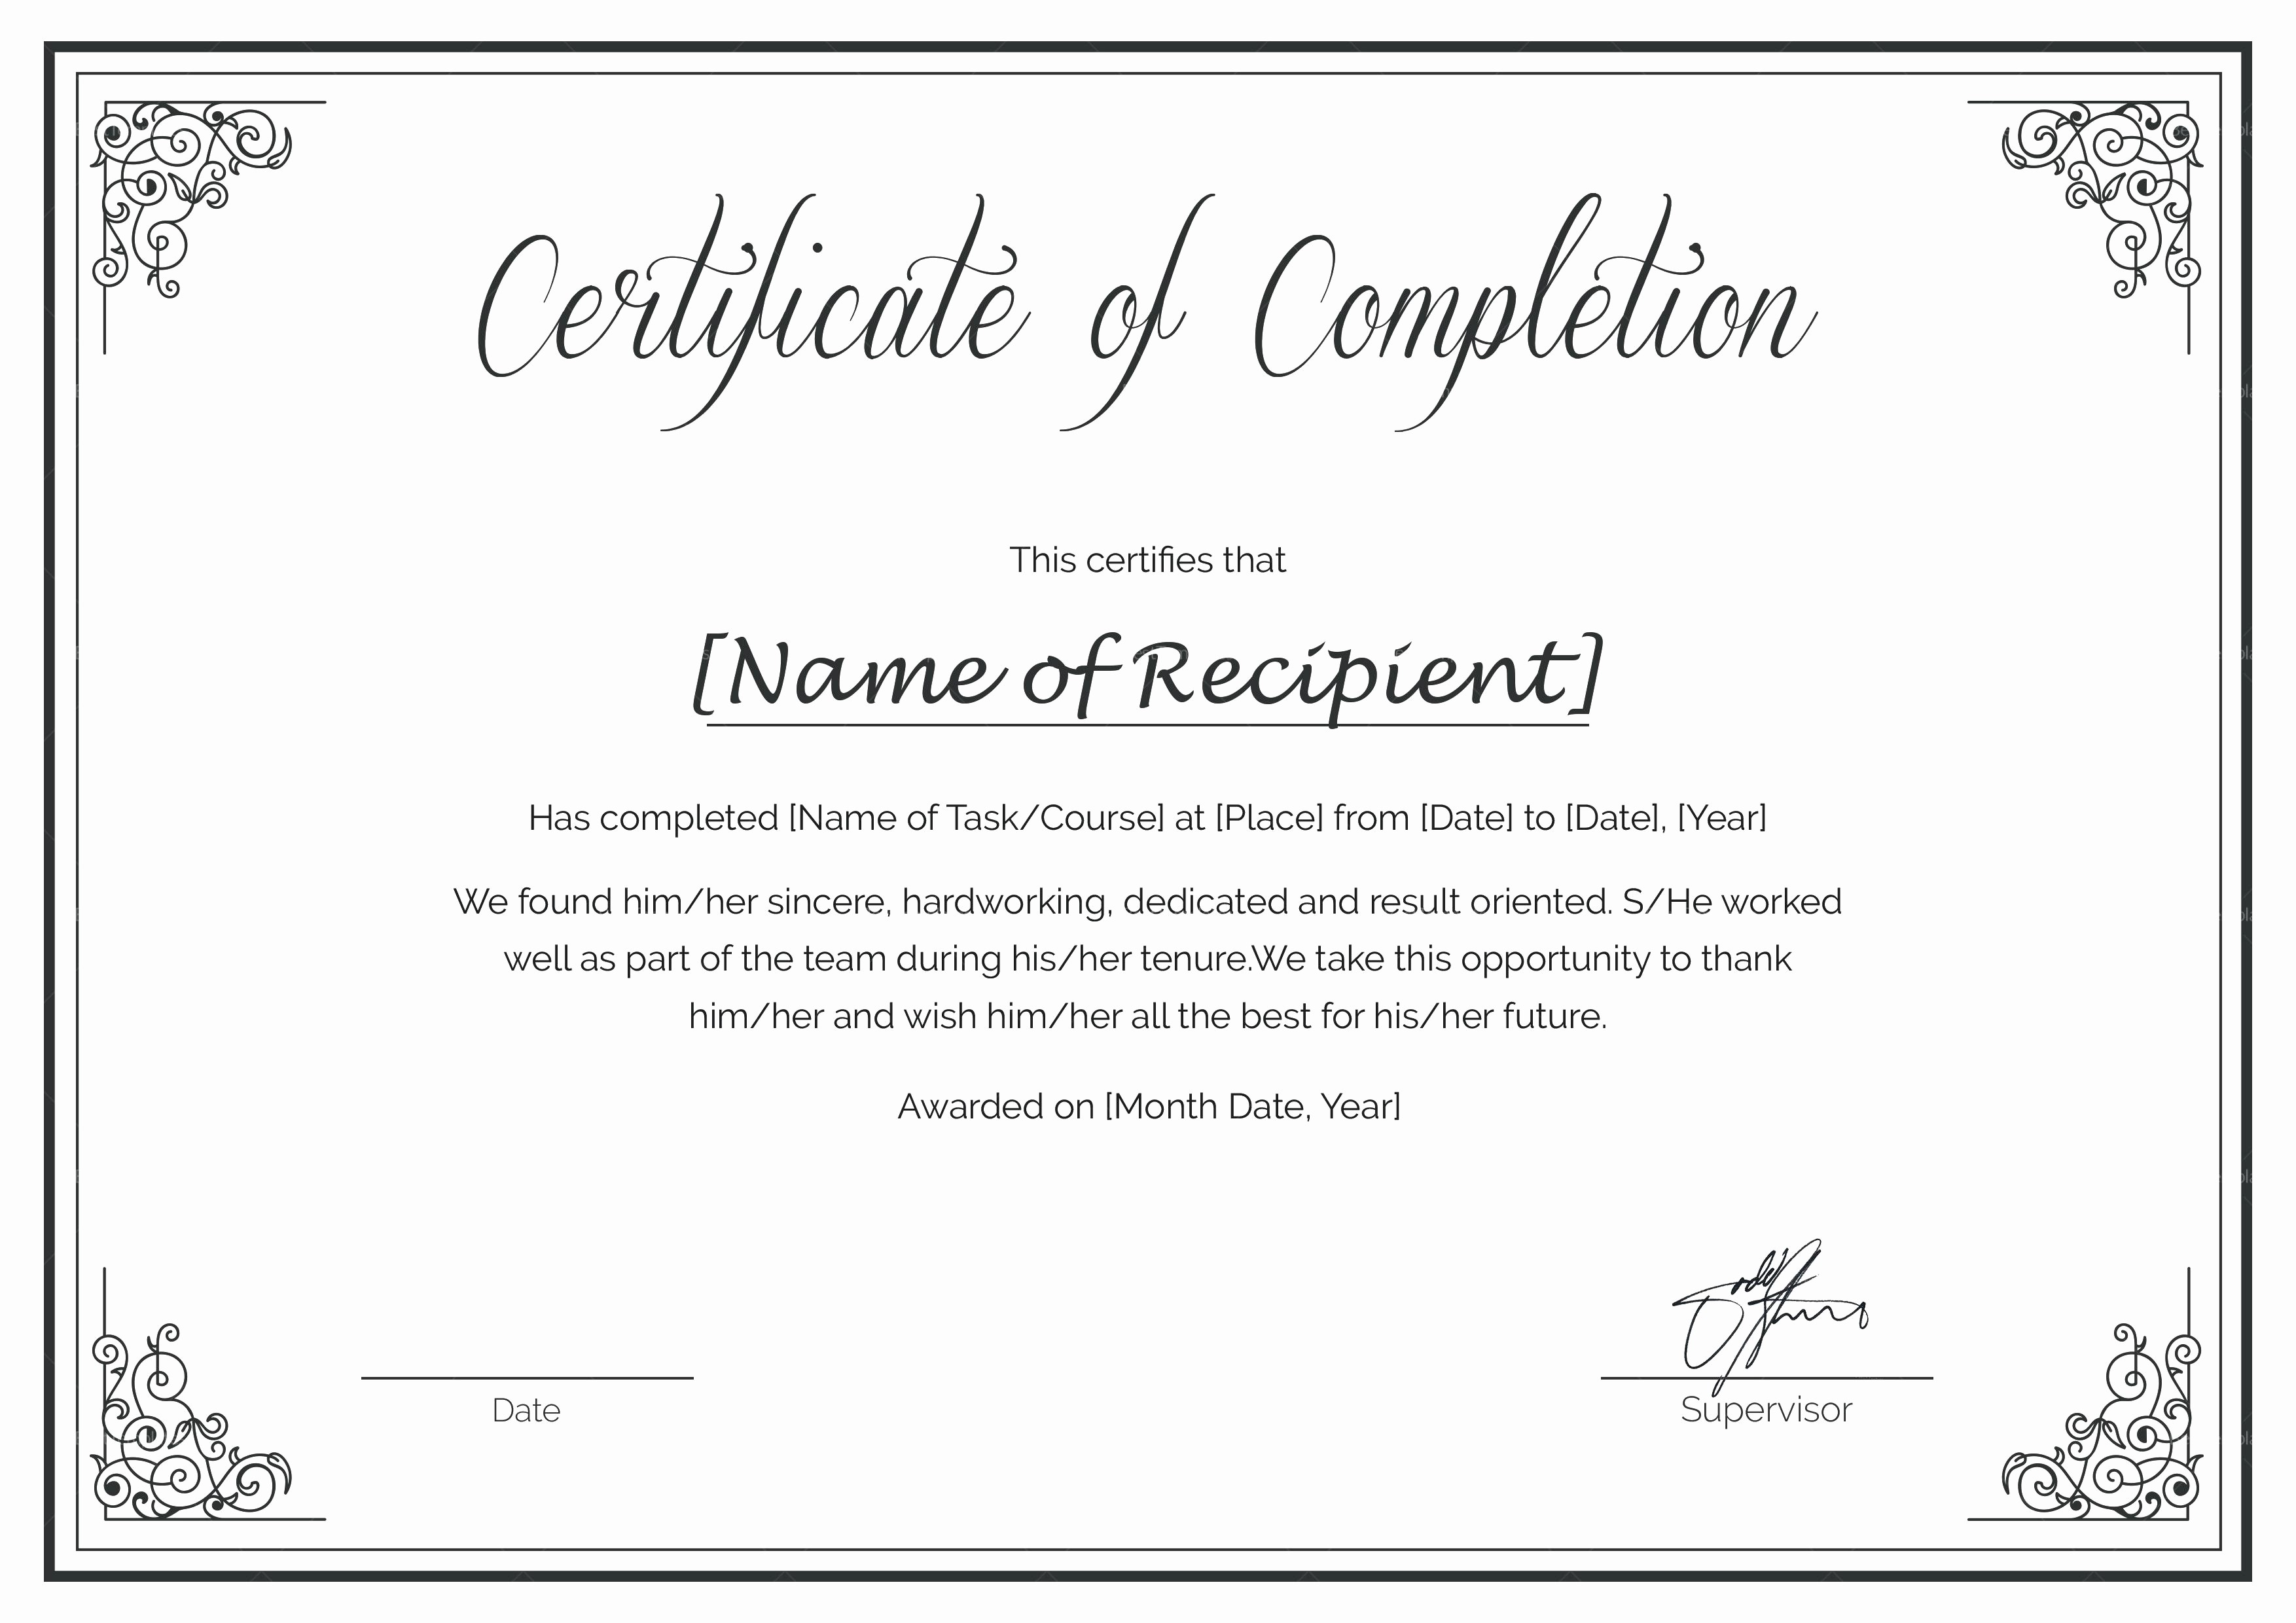 Sample Training Certificate Of Completion Inspirational Template Certificate Course Pletion Template